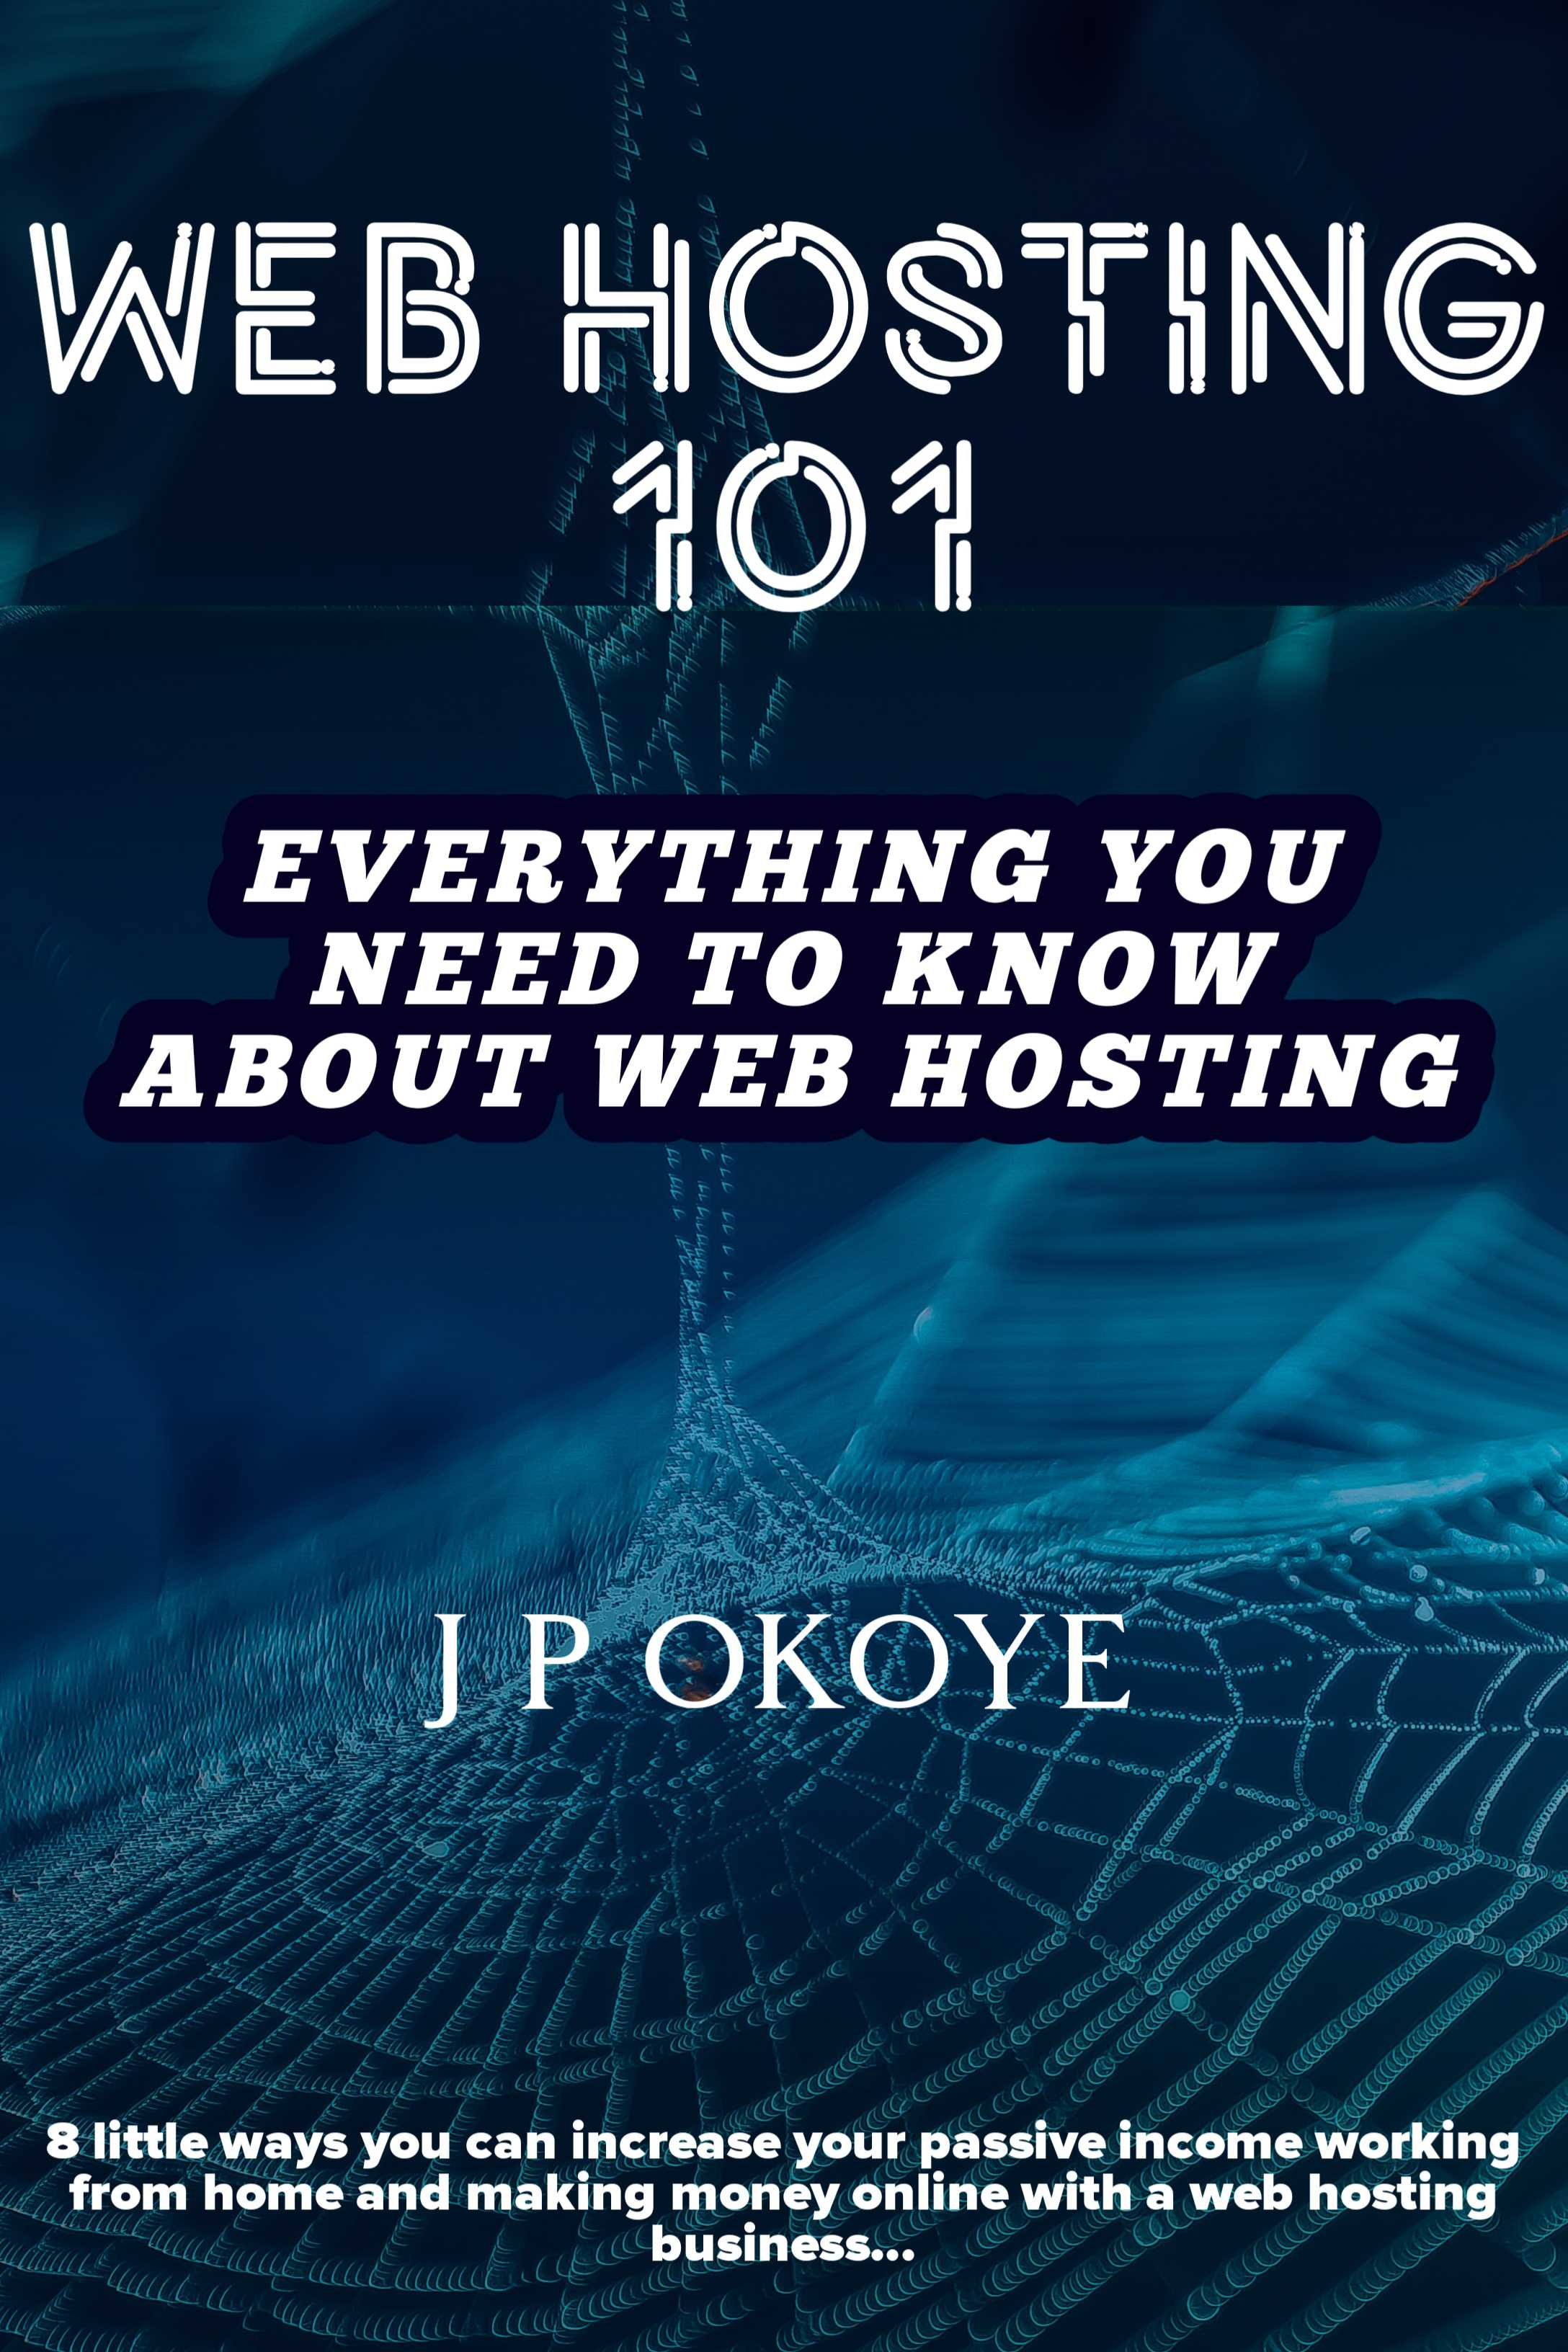 Web Hosting 101: Everything you need to know about the web hosting business